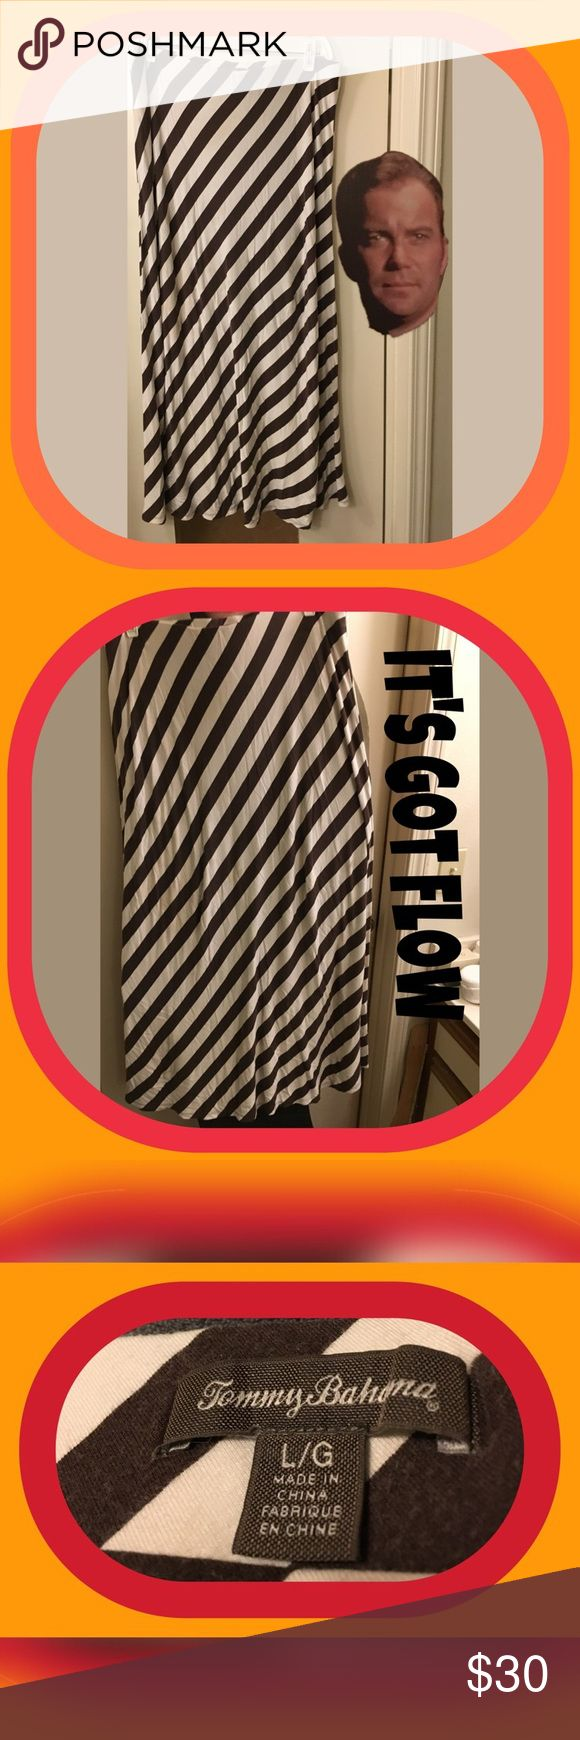 🏝🏝 TOMMY BAHAMA MAXI SKIRT EUC 🏝🏝. 🏝🏝 TOMMY BAHAMA MAXI SKIRT EUC 🏝🏝.  🌸🌸THE STRIPES ARE BROWN AND NOT BLACK AS ORIGINALLY POSTED!  SORRY FOR ANY INCONVENIENCE THIS MIGHT HAVE CAUSED 🌸🌸. Authentic Tommy Bahama white with diagonal BROWN stripes Maxi Skirt. This skirt has some GREAT flow that goes with it.  EXCELLENT Condition!!  Size Large Tommy Bahama Skirts Maxi